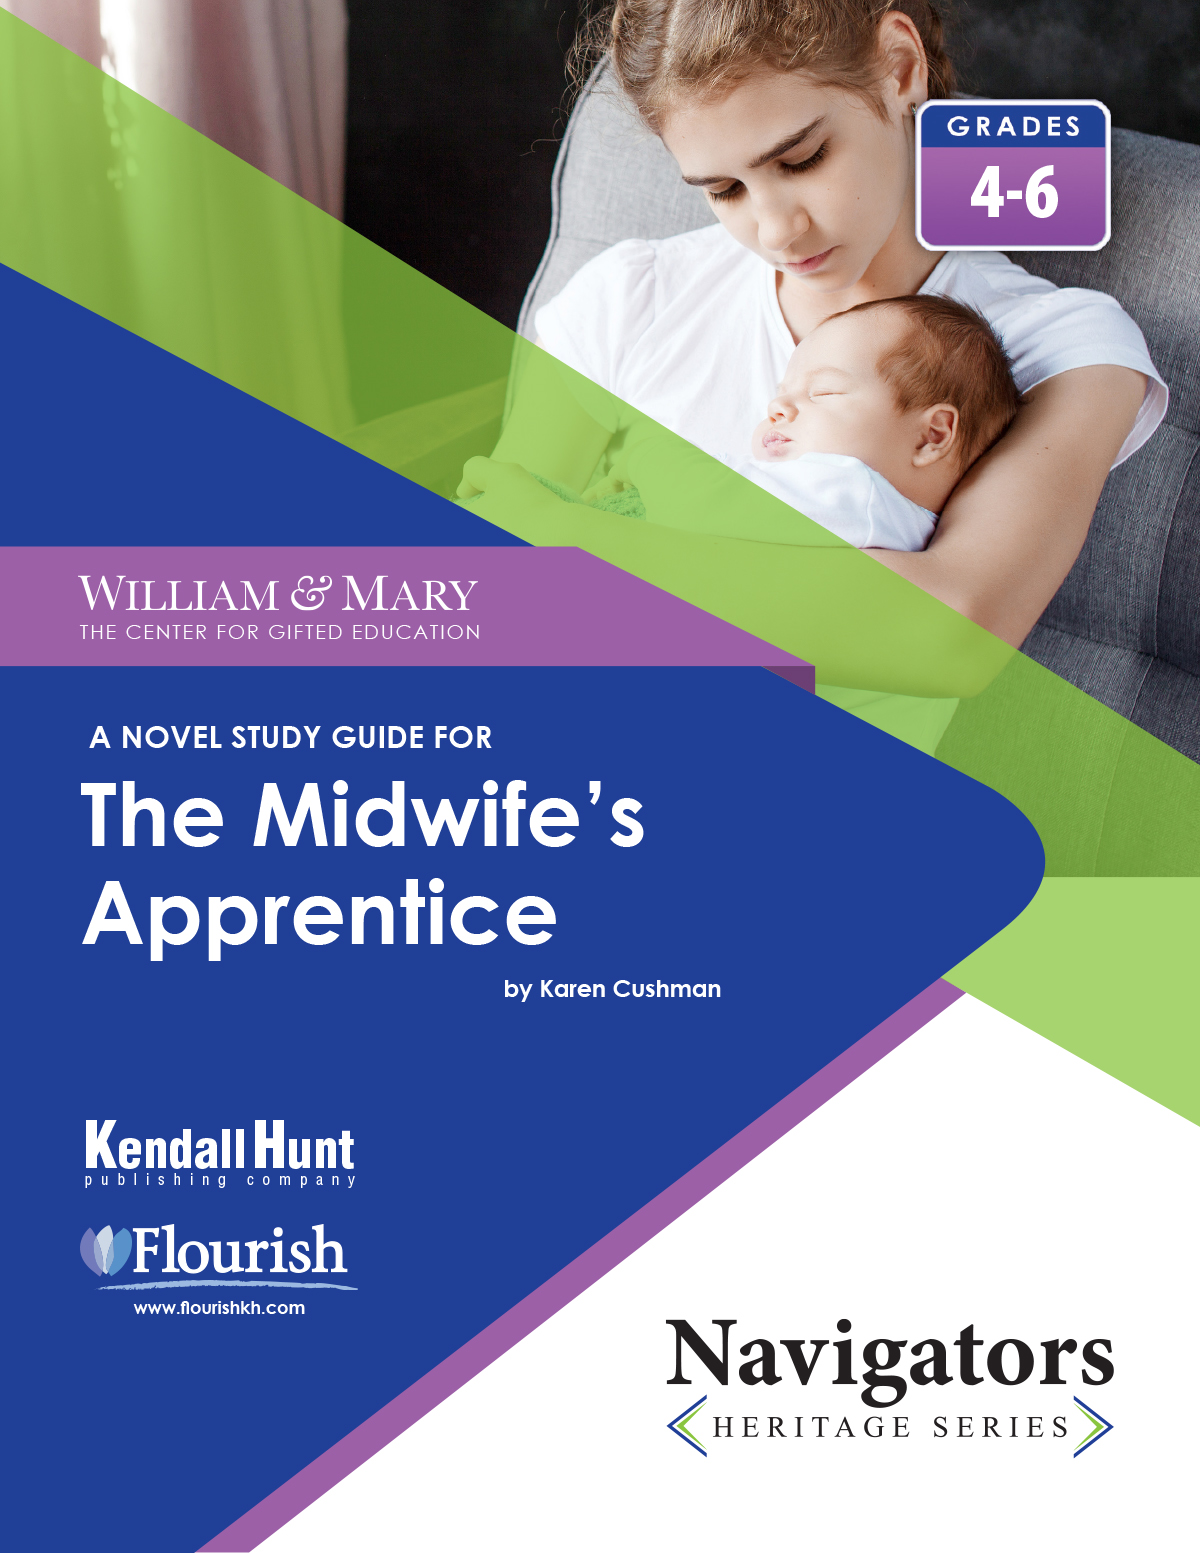 William & Mary Navigator Midwife's Apprentice